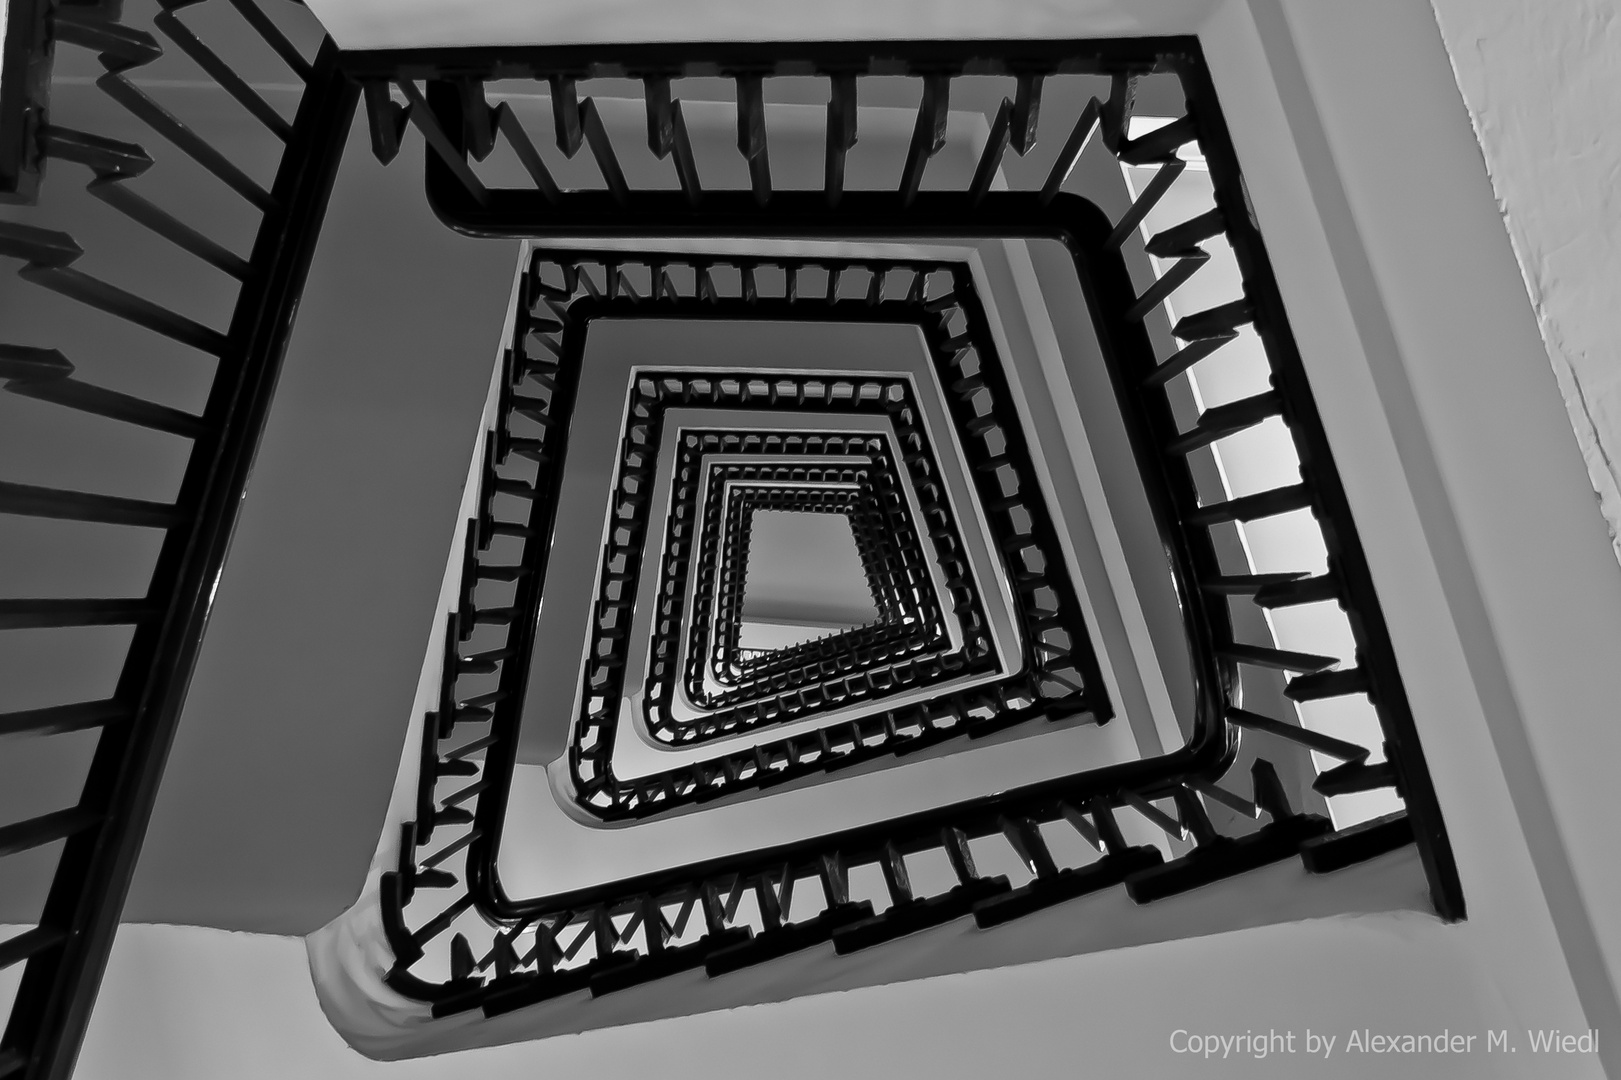 Stairway to...